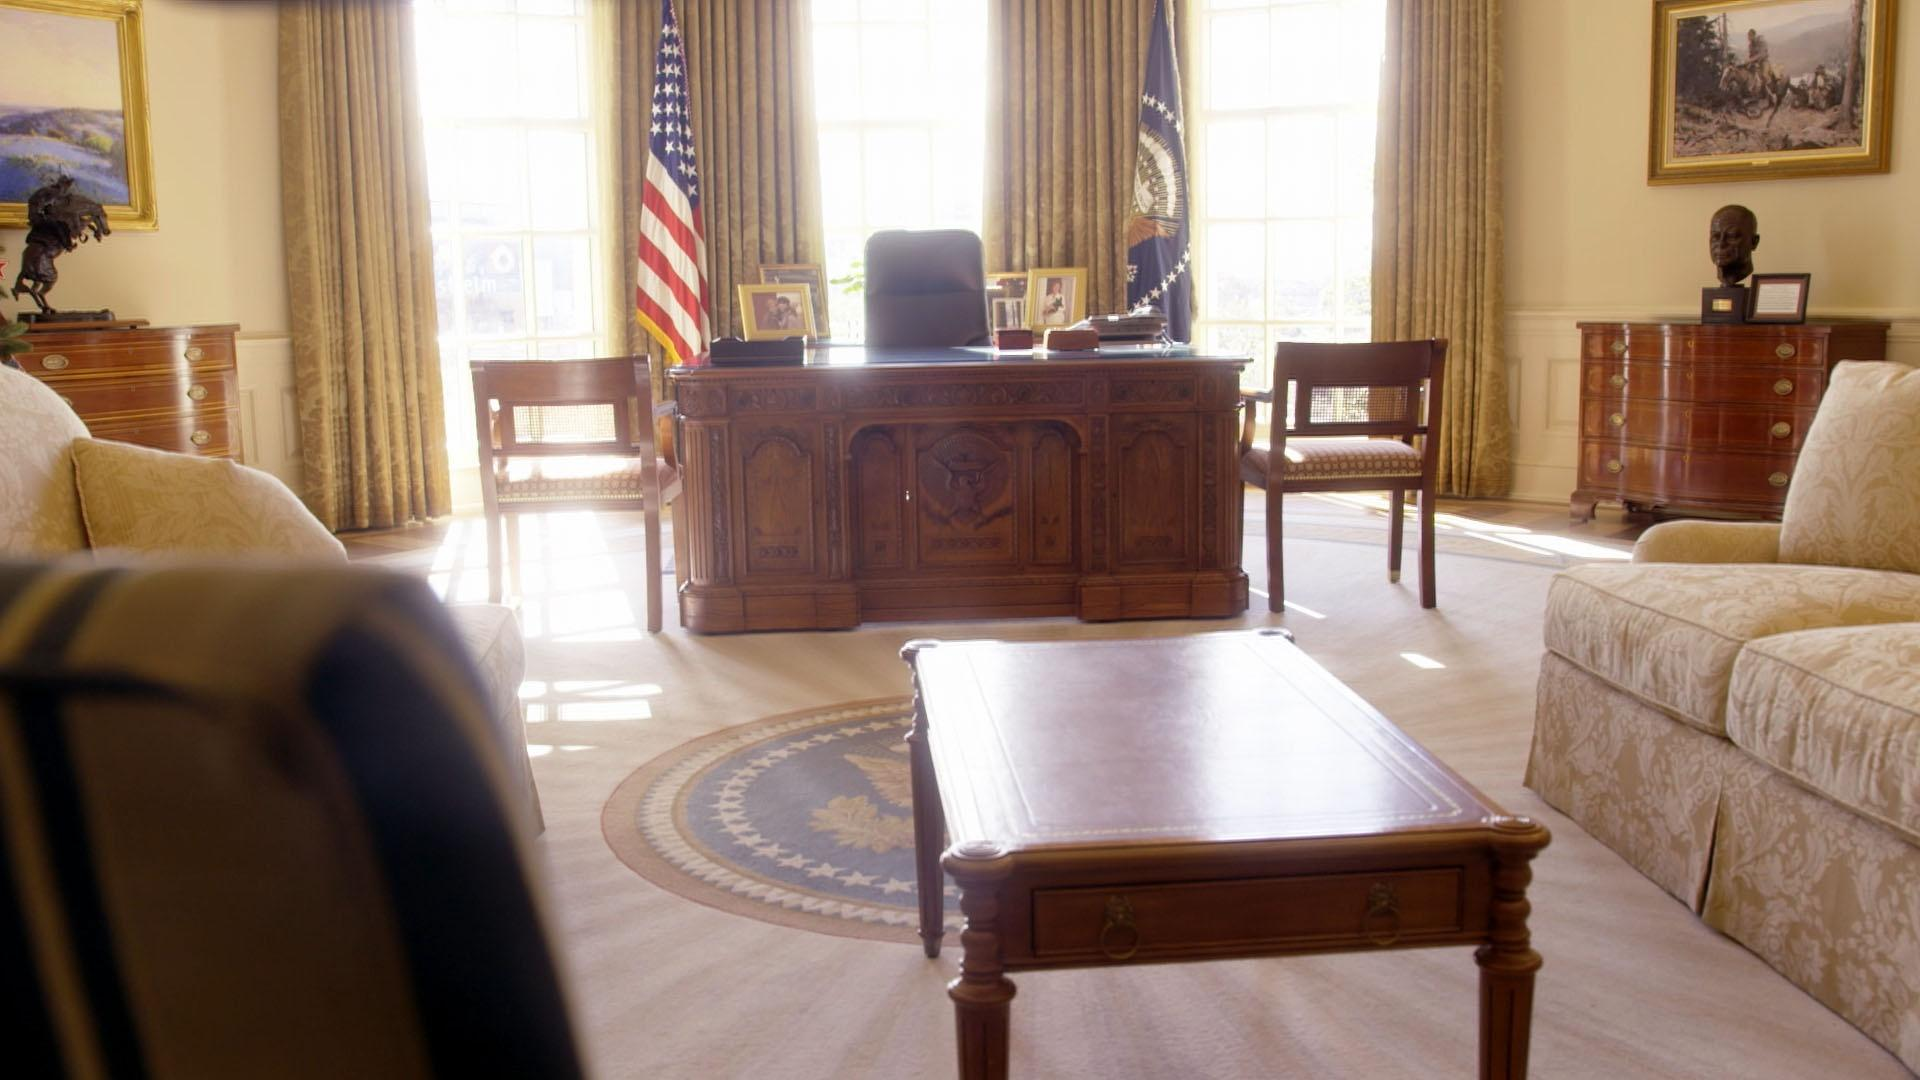 Video the oval office watch the white house inside for House inside images